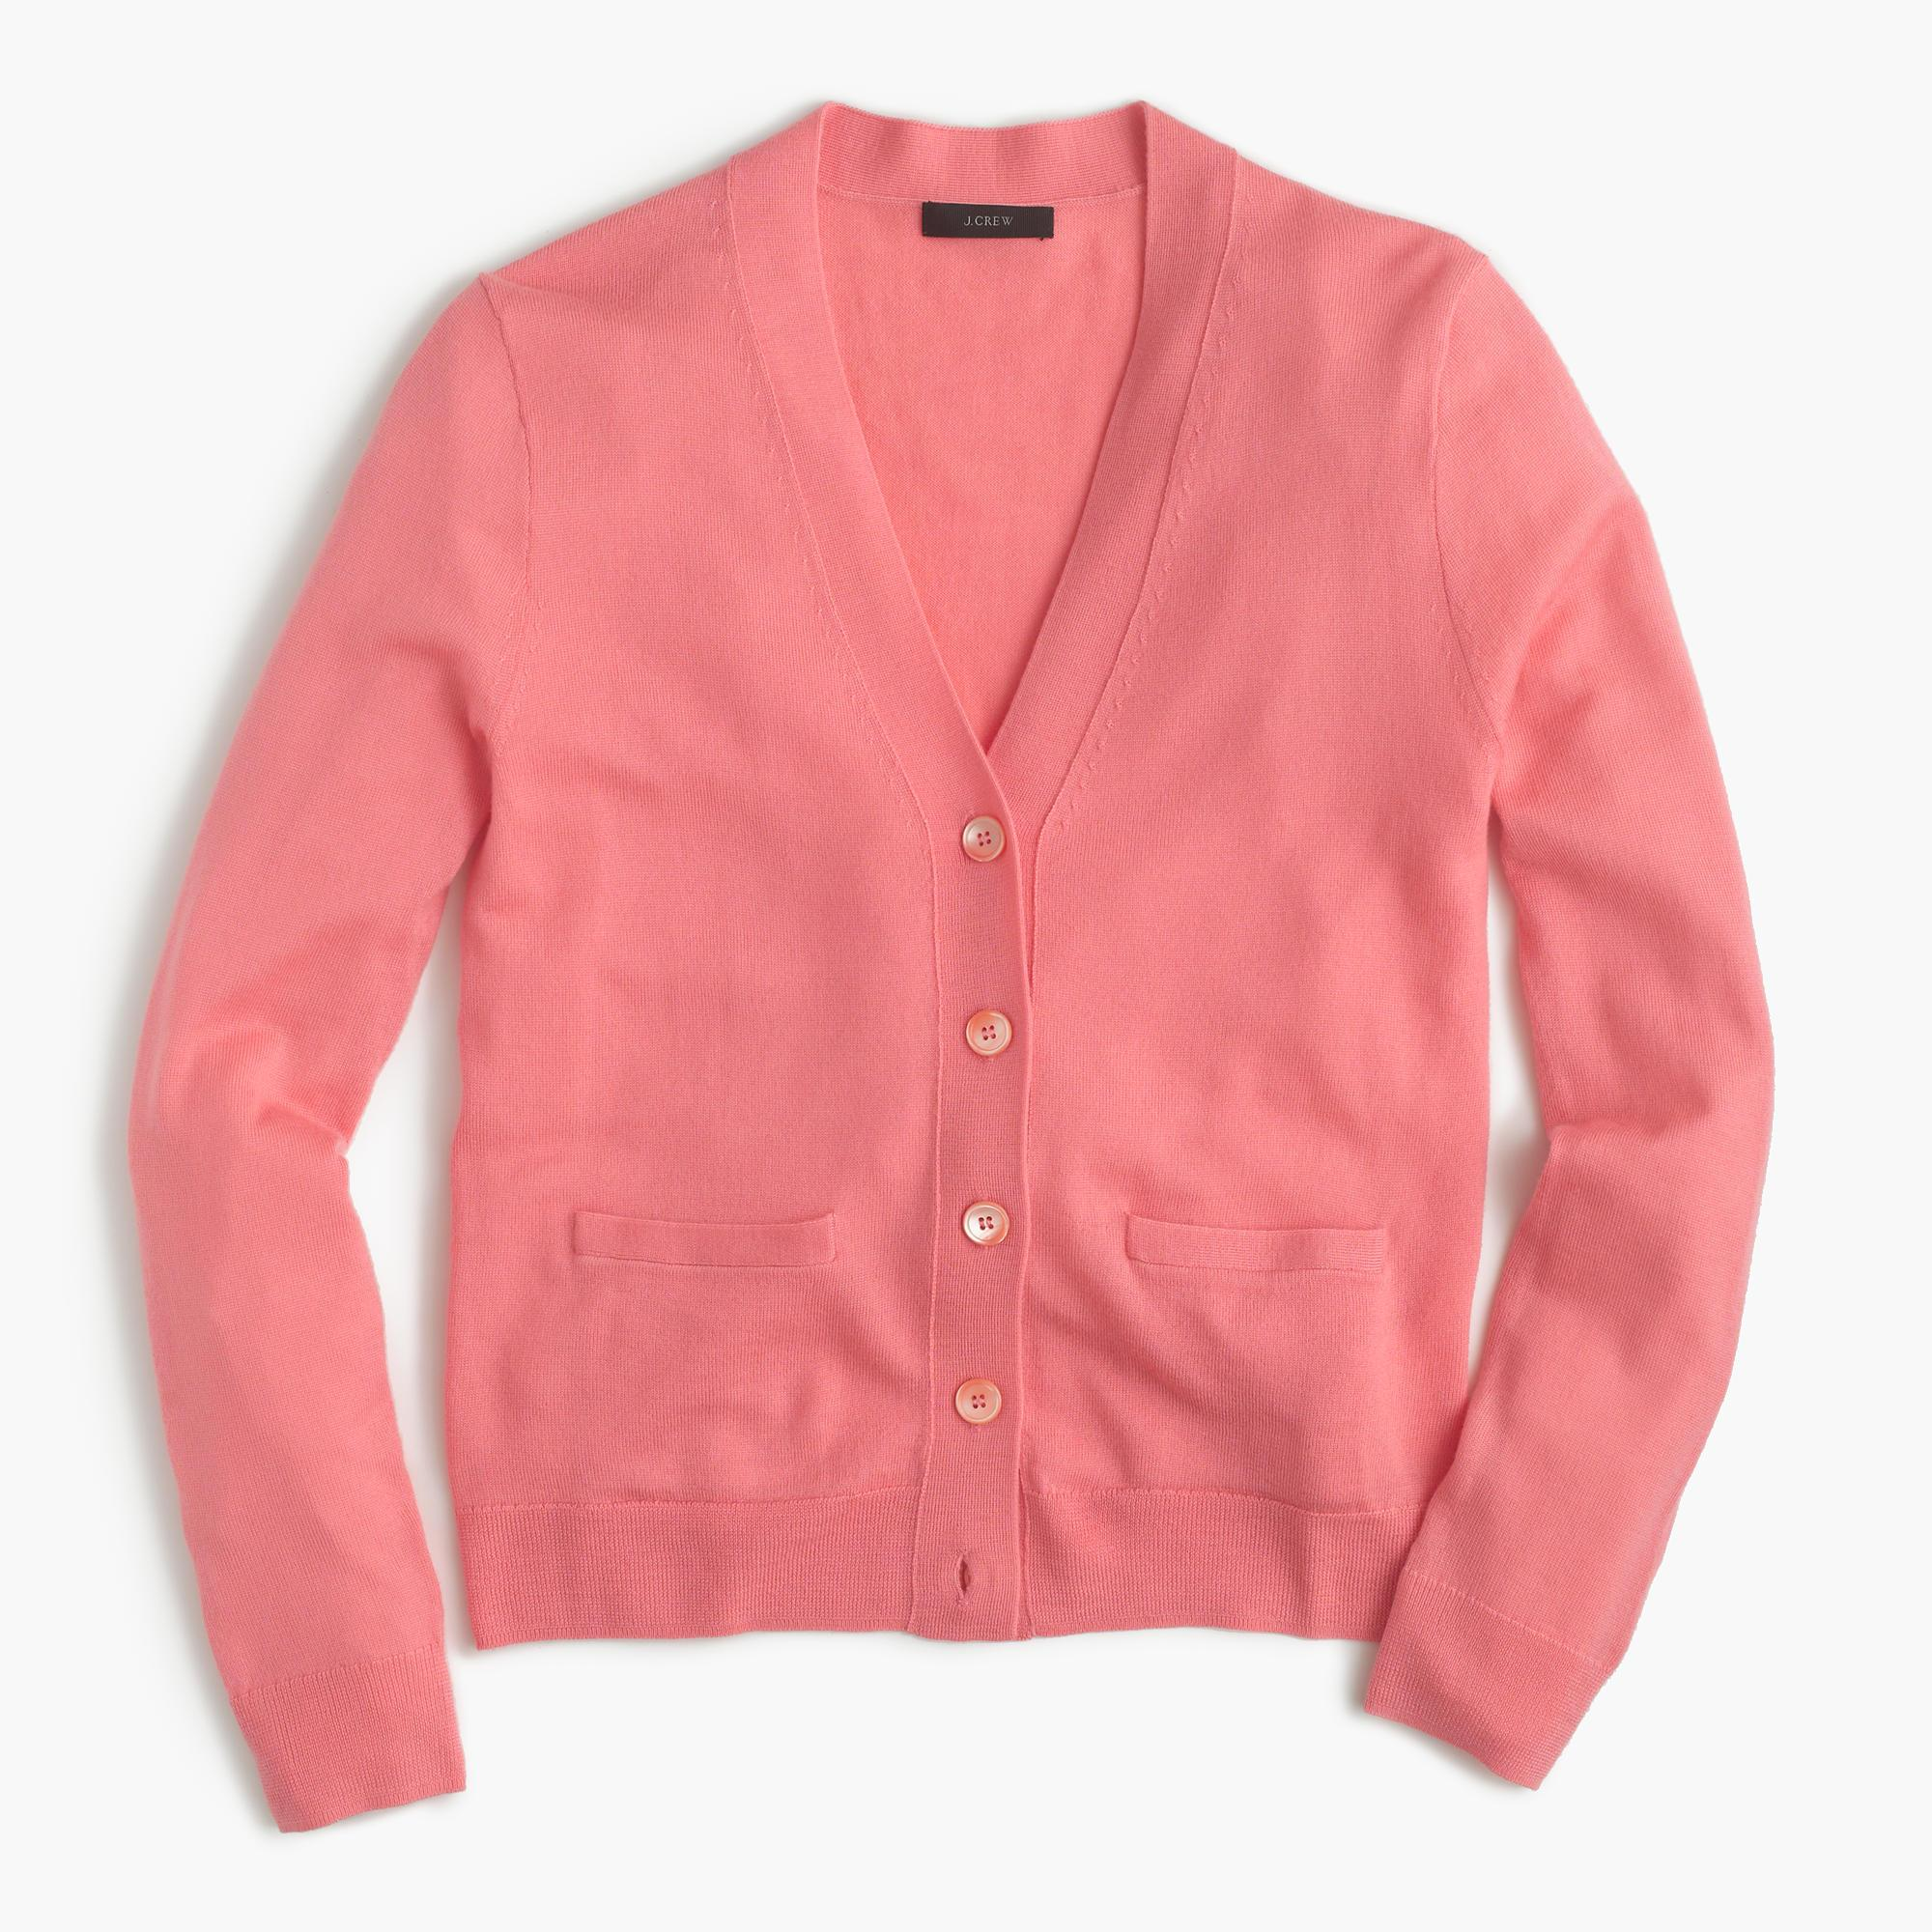 J.crew V-neck Cardigan Sweater In Merino Wool in Pink | Lyst